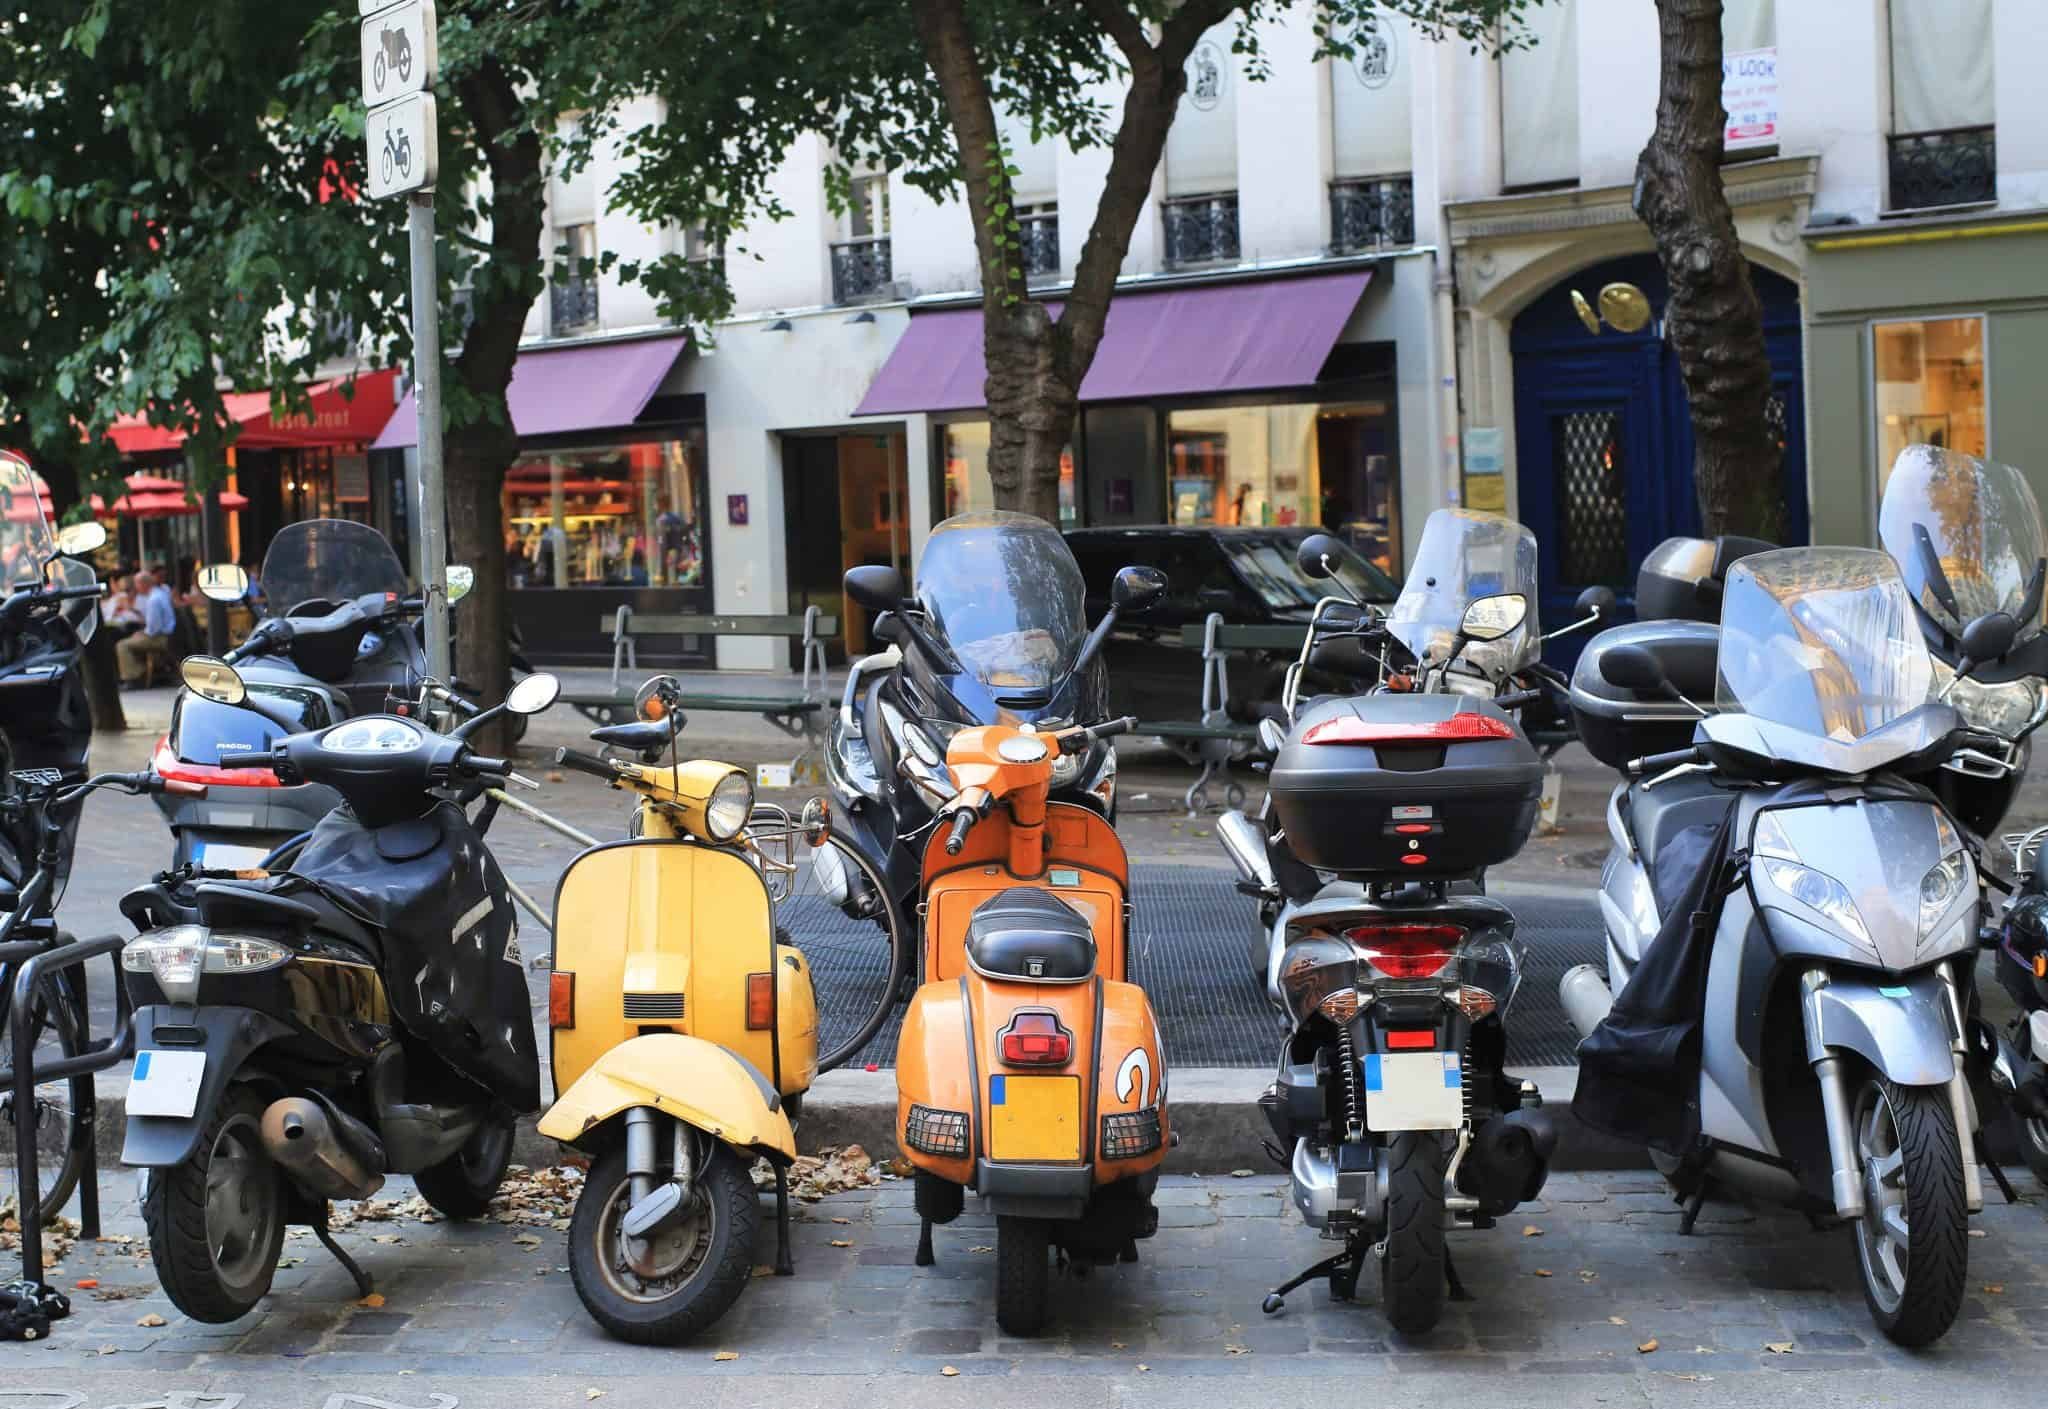 A crowd of scooters in Paris - a unique sight for first time visitors to Paris